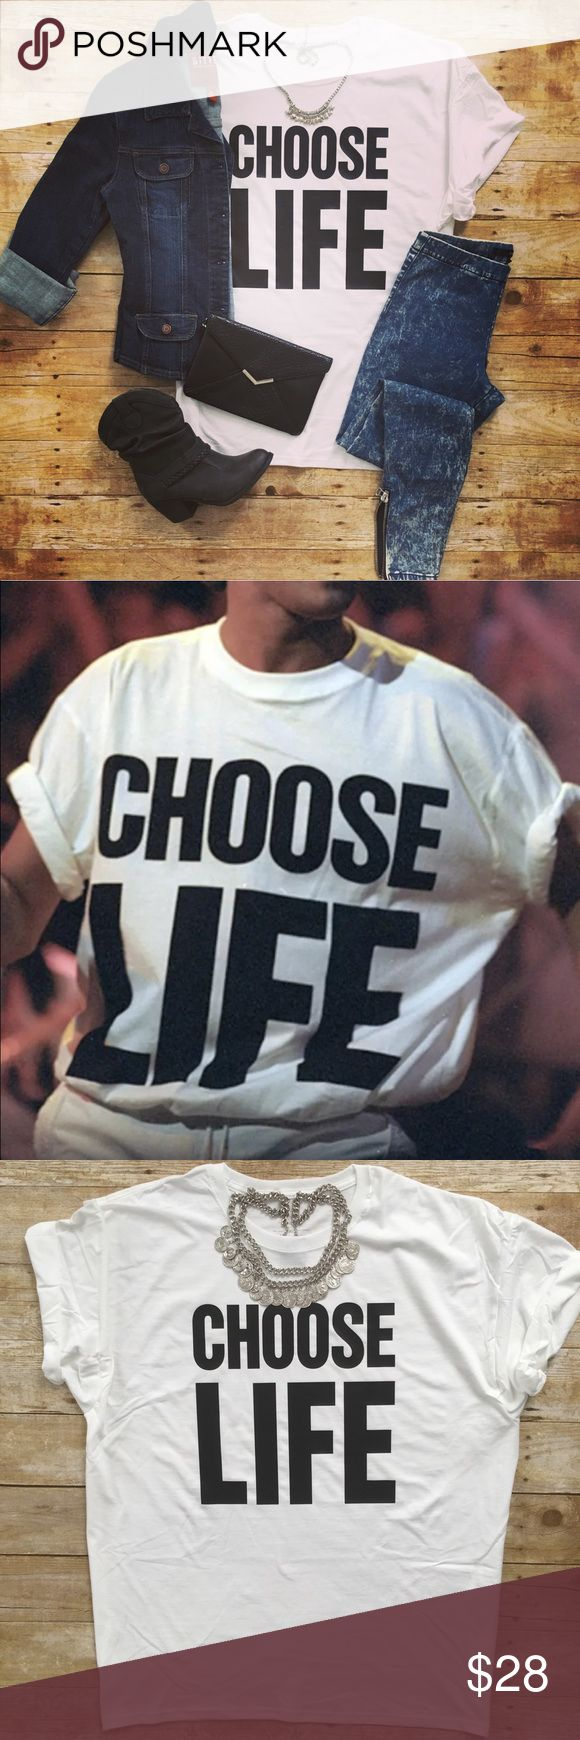 CHOOSE LIFE George Michael WHAM! 80s Retro T-Shirt Katharine Hamnet style CHOOSE LIFE design made popular by iconic 80s band WHAM! A very fun stand out tee! Great for anyone!! Makes a great gift!! White w/BLACK Letters Crew Neck   Short Sleeves Unisex Fit   Loose Tee 100% Cotton   Pre-Shrunk Brand New!!   Never worn!! SHIPS FAST    ❌No Offers Please❌ Available Sizes: S-3XL   Unisex Adult Tee Size chart estimated, not all shirts exact to dimensions. Numbers listed in inches, please allow up…